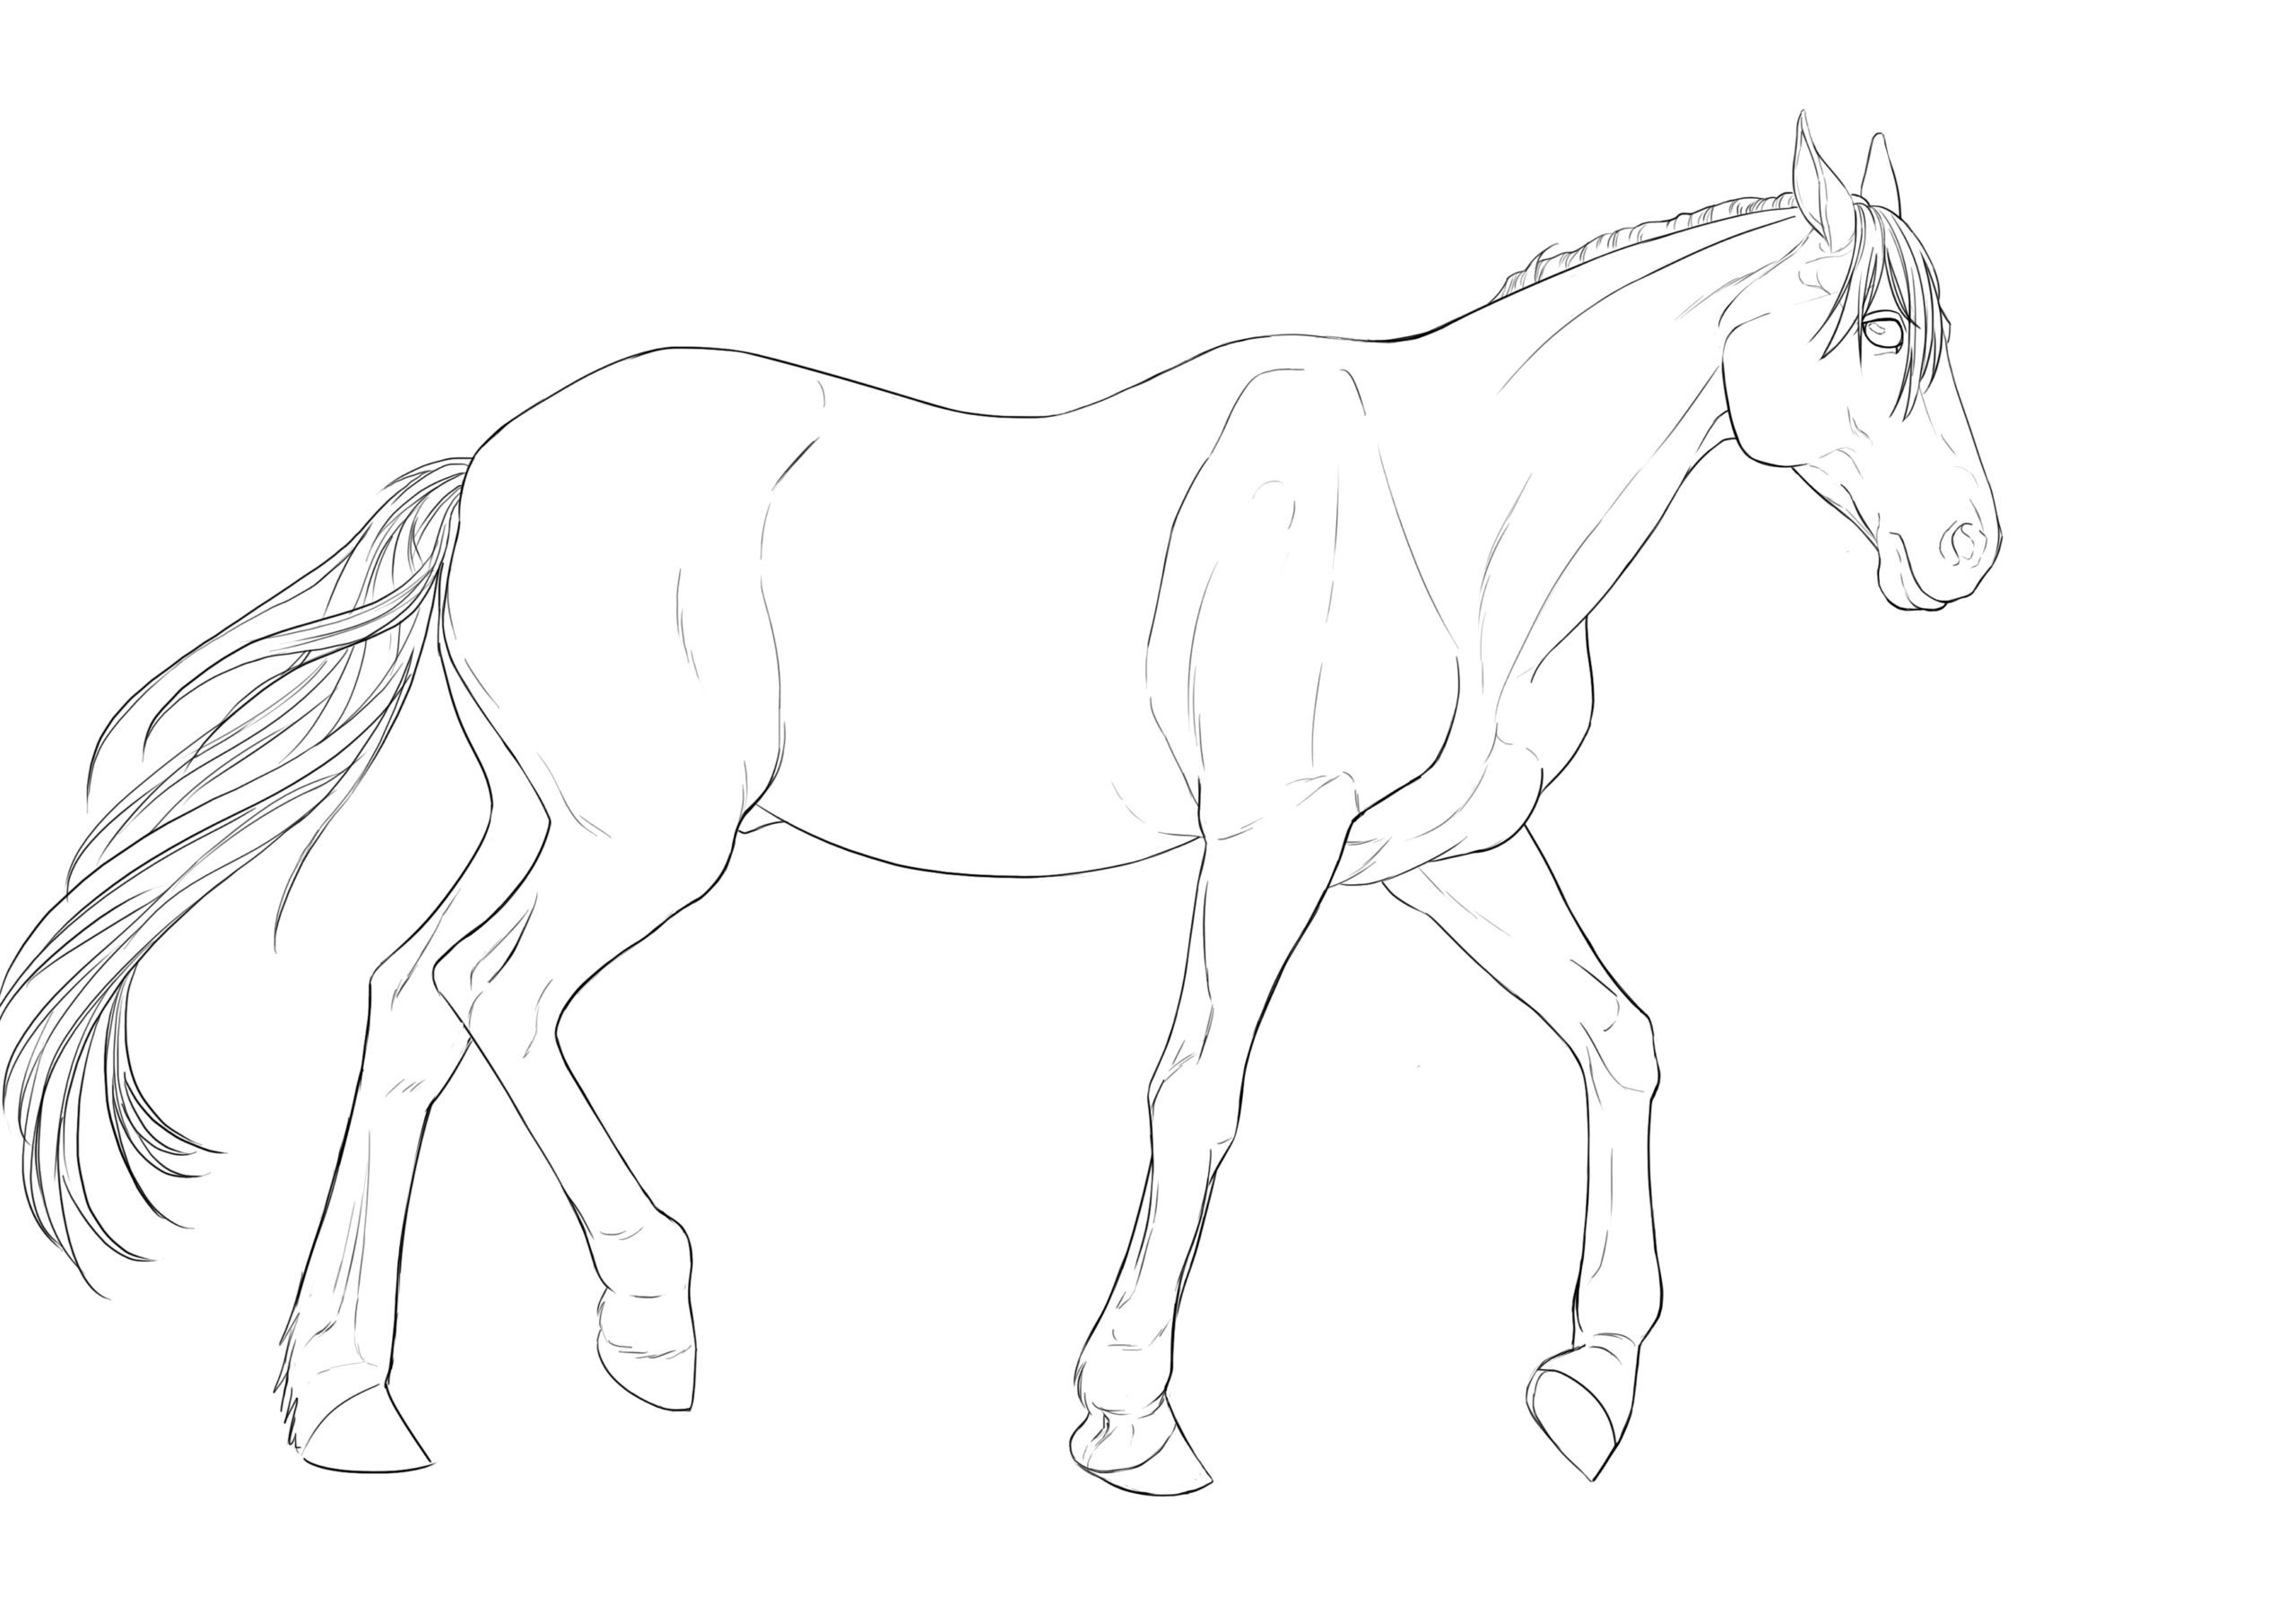 Cool Dessin Facile A Faire De Cheval 42 sur Coloriage Pages with Dessin Facile A Faire De Cheval